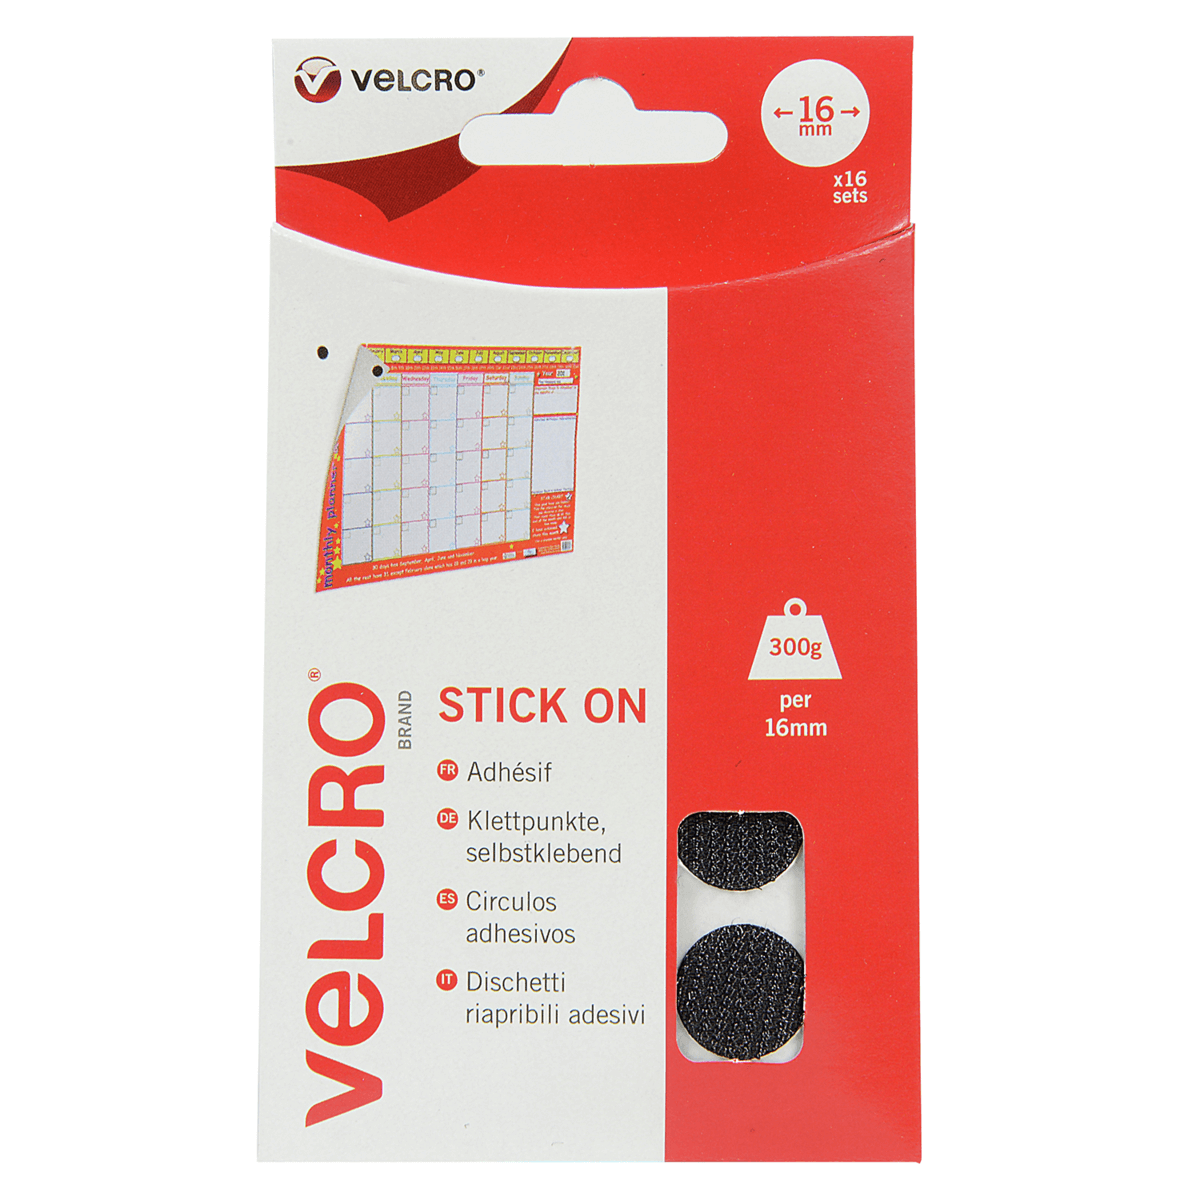 16mm x 16 Sets  Coin Shaped Stick-On Velcro Hook & Loop Tape Black